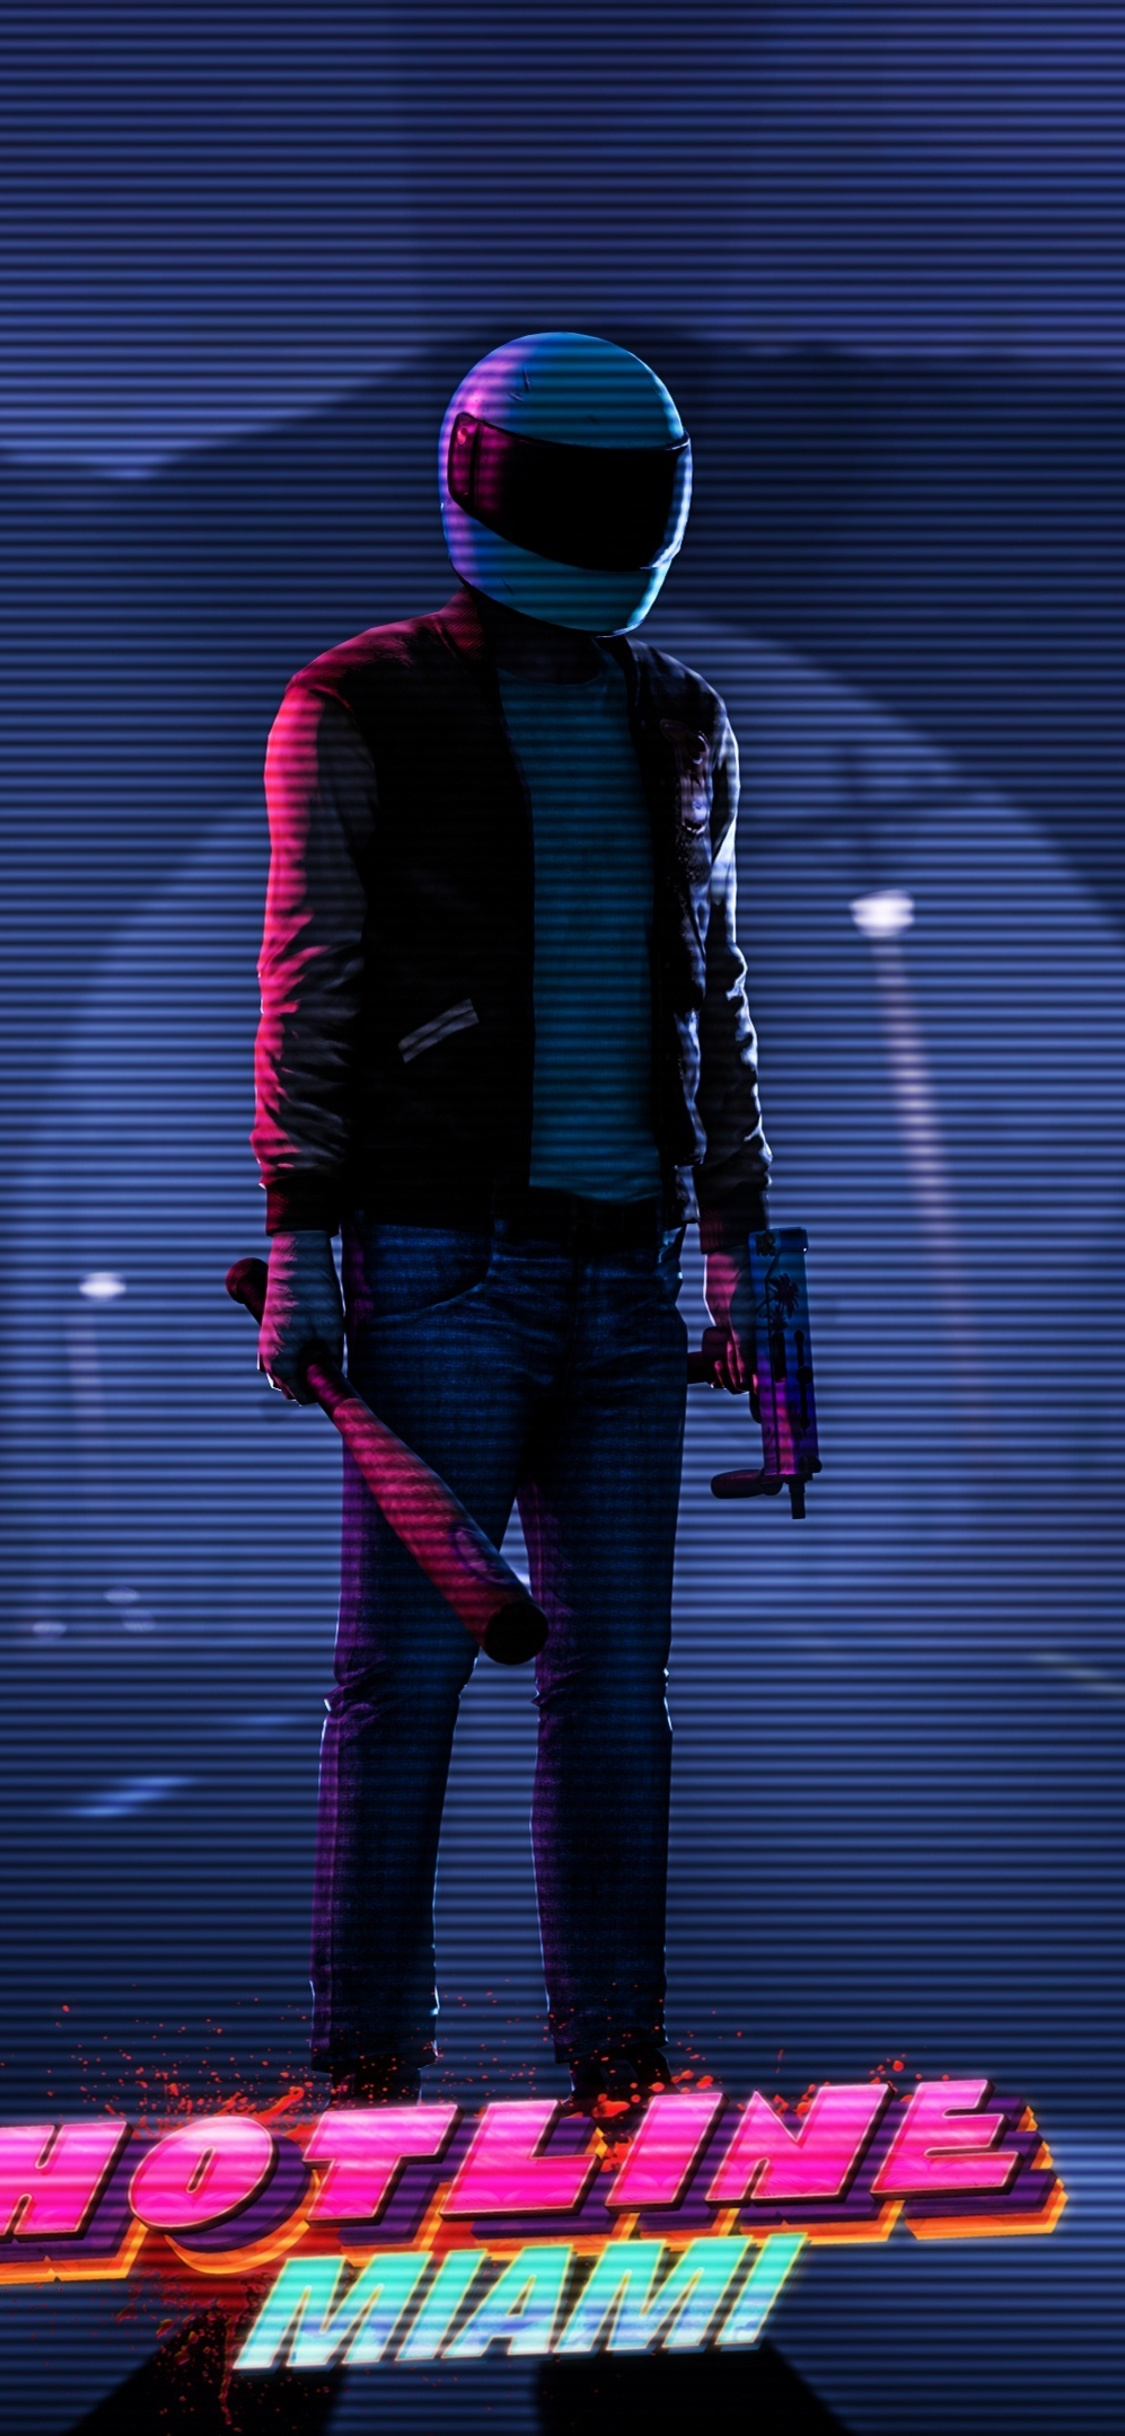 1125x2436 Hotline Miami Iphone XIphone 10 HD 4k Wallpapers Images